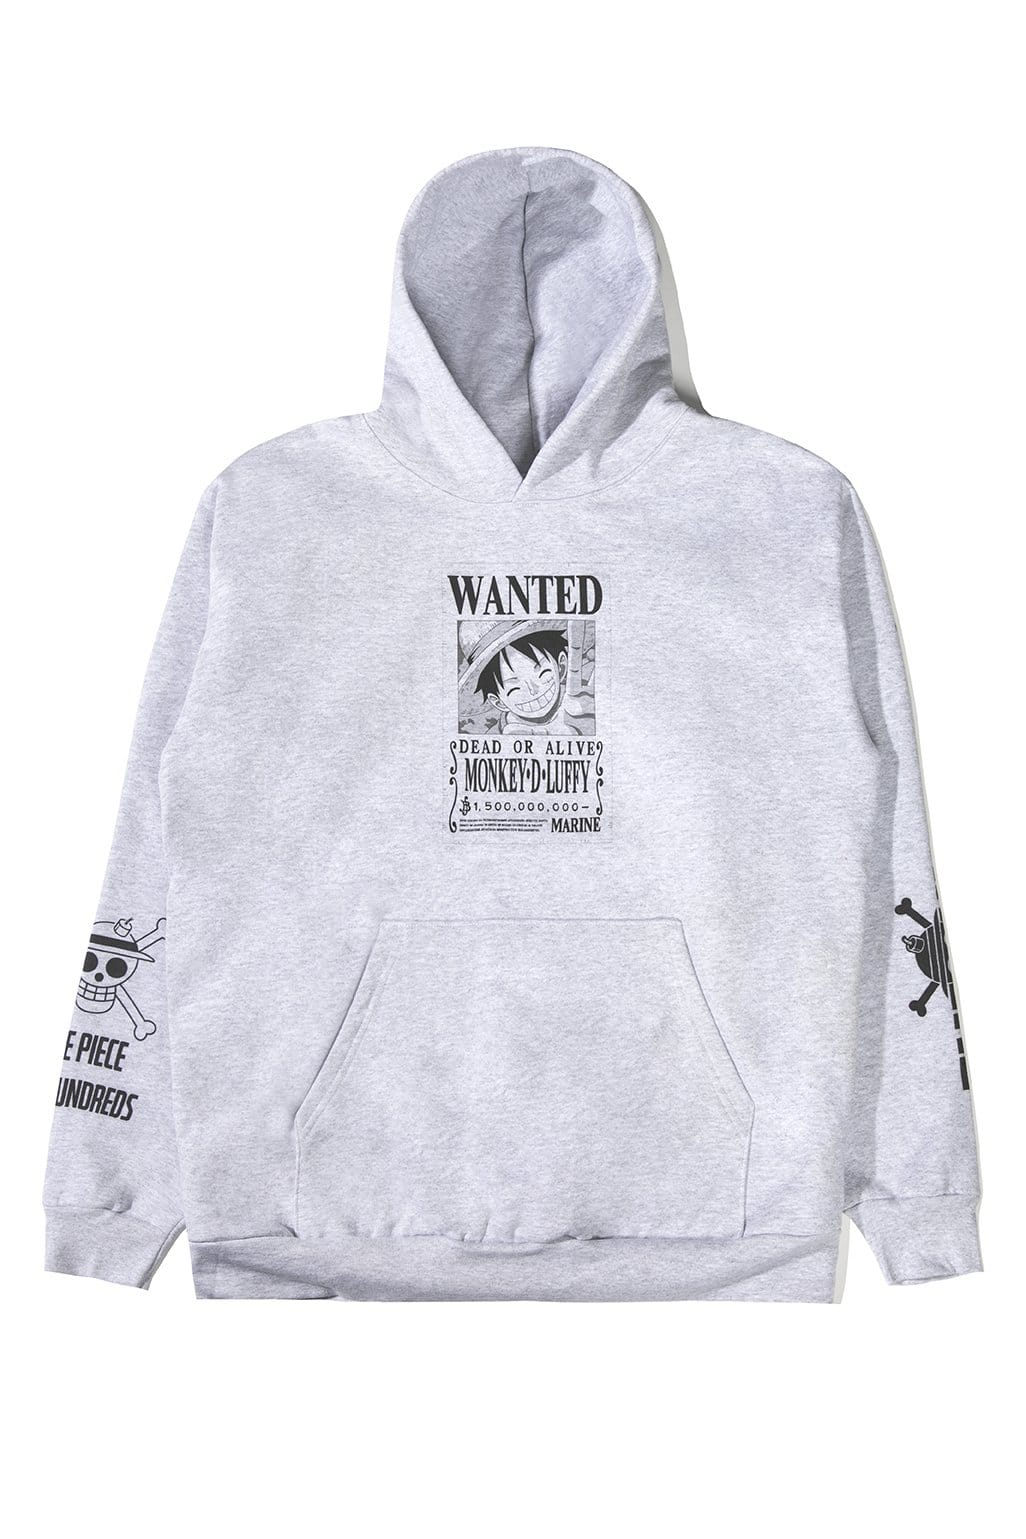 The Hundreds One Piece Luffy Wanted Poster Pullover